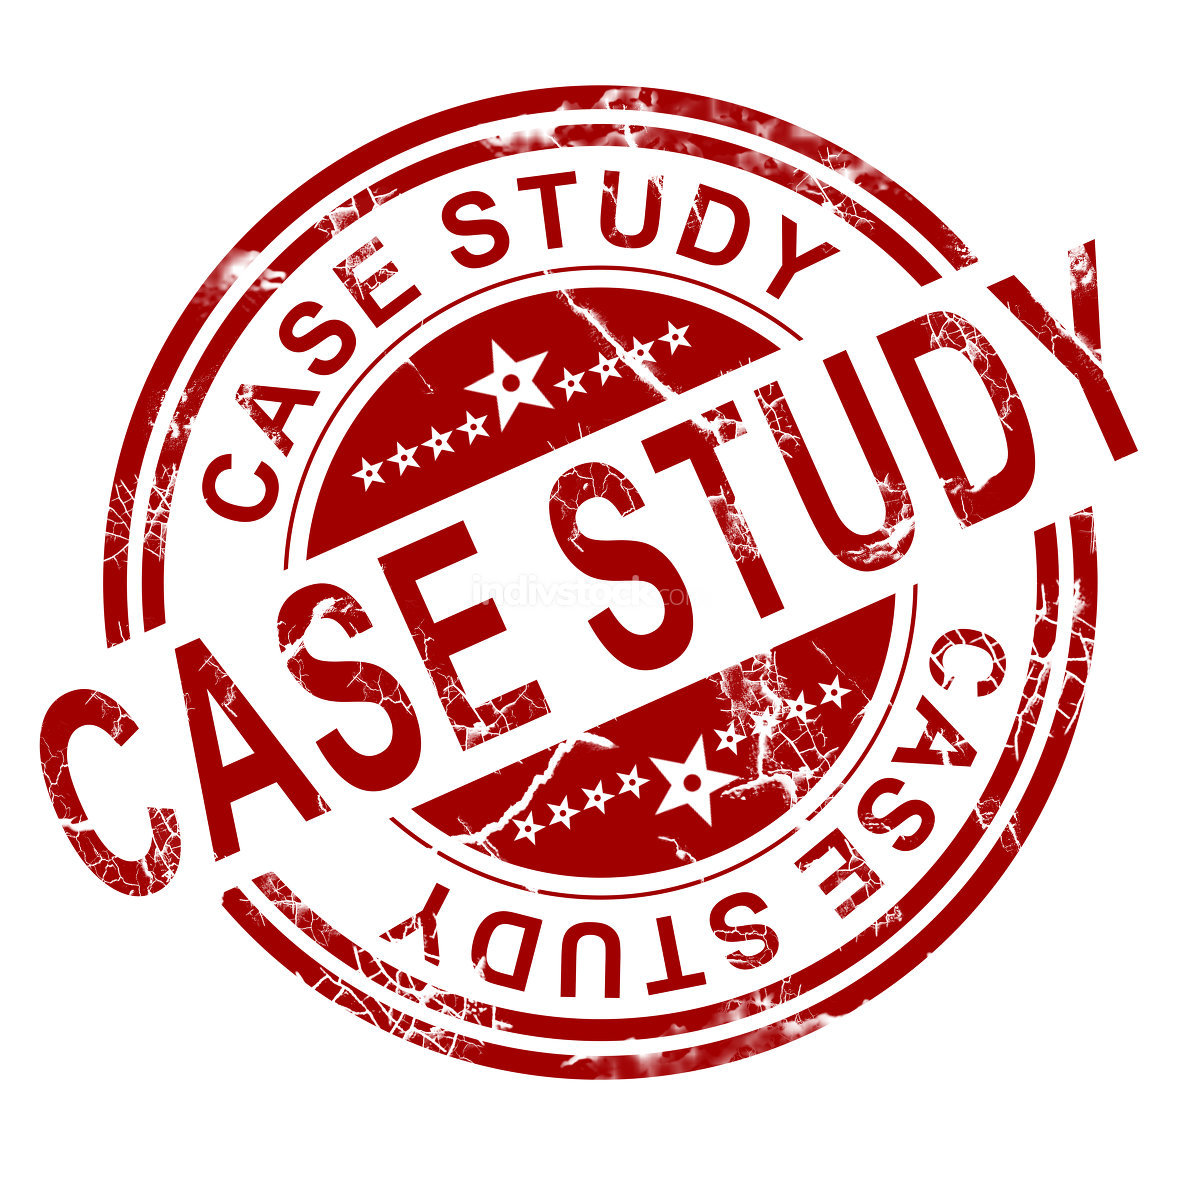 Red case study stamp